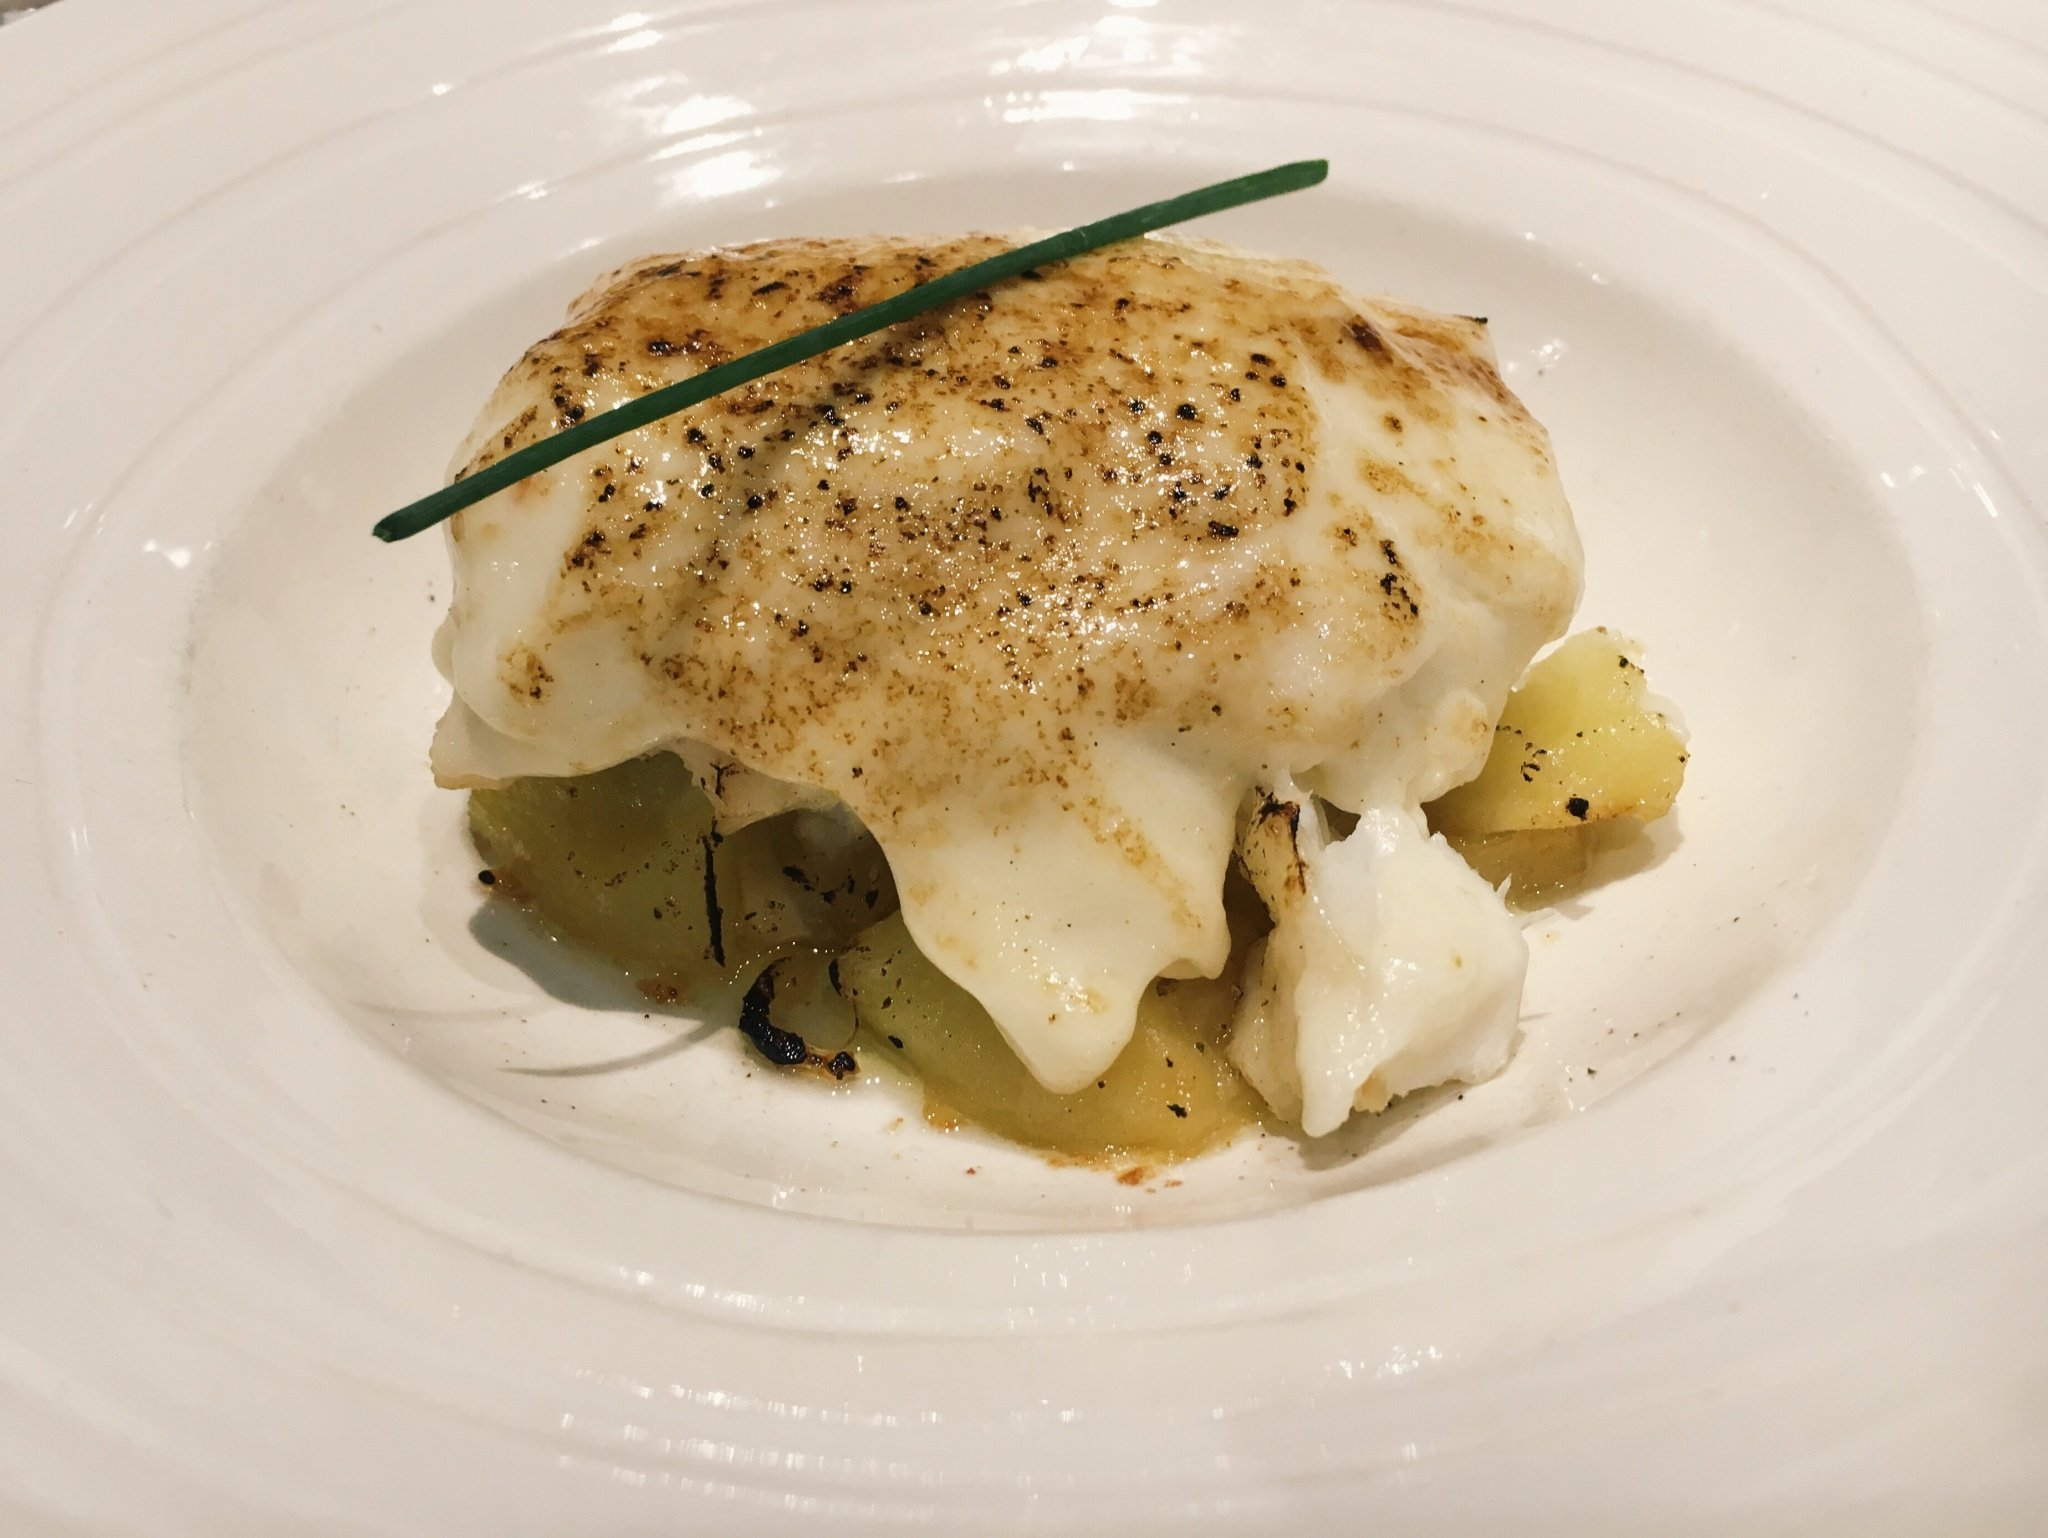 One of the most delicious gastronomic inventions I´ve tried in one of the local restaurants in Morella Spain: a cod with an apple alioli sauce